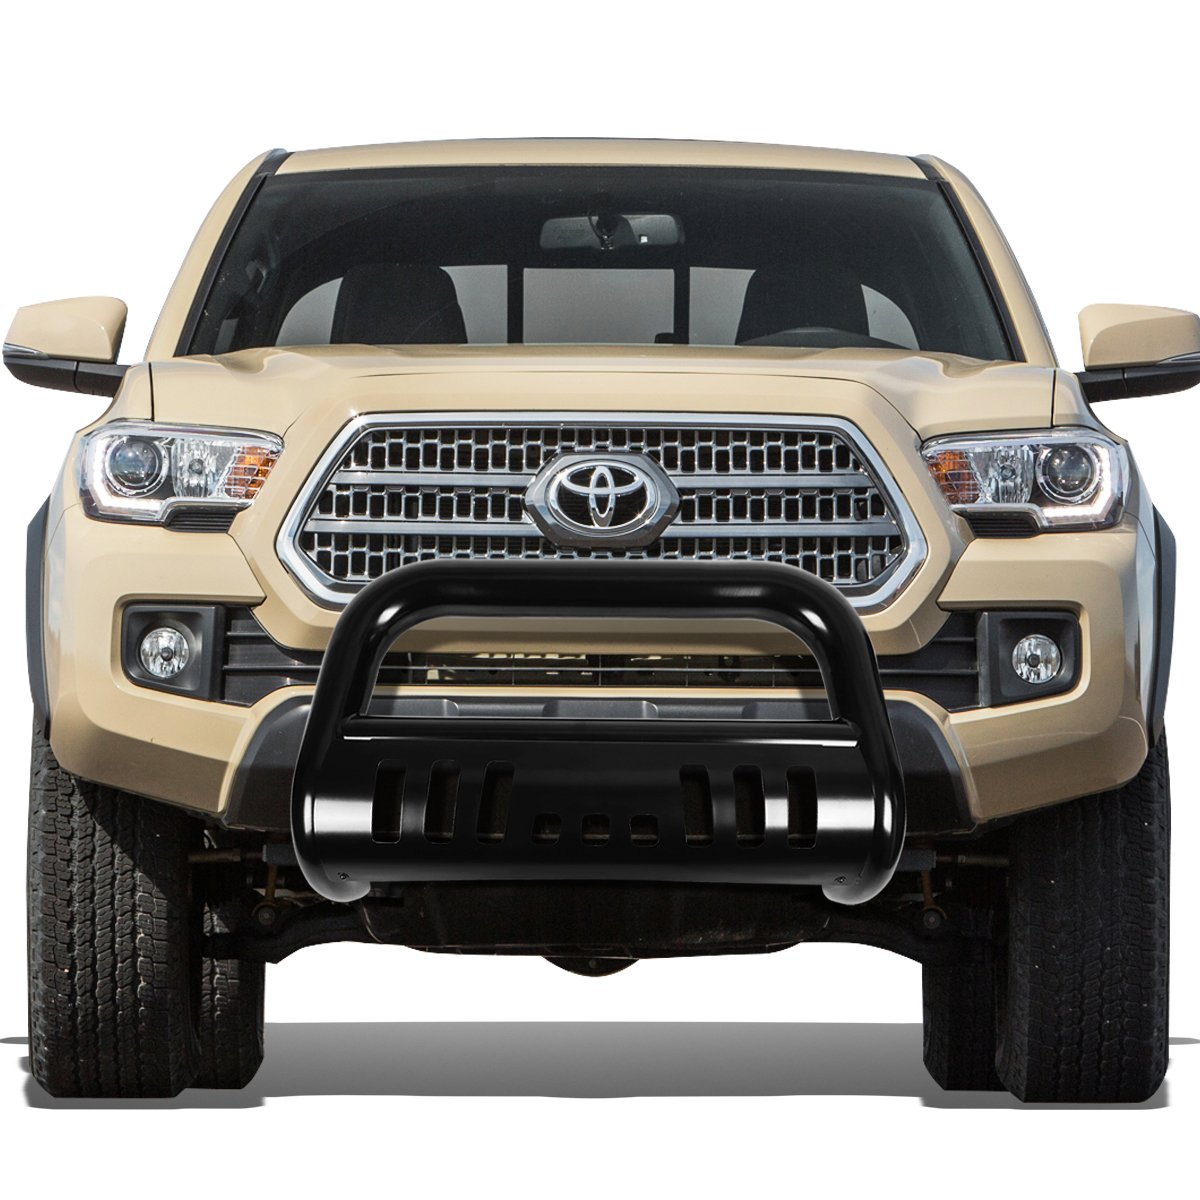 Black For Tacoma 3 inches Bumper Push Bull Bar+Removable Skid Plate